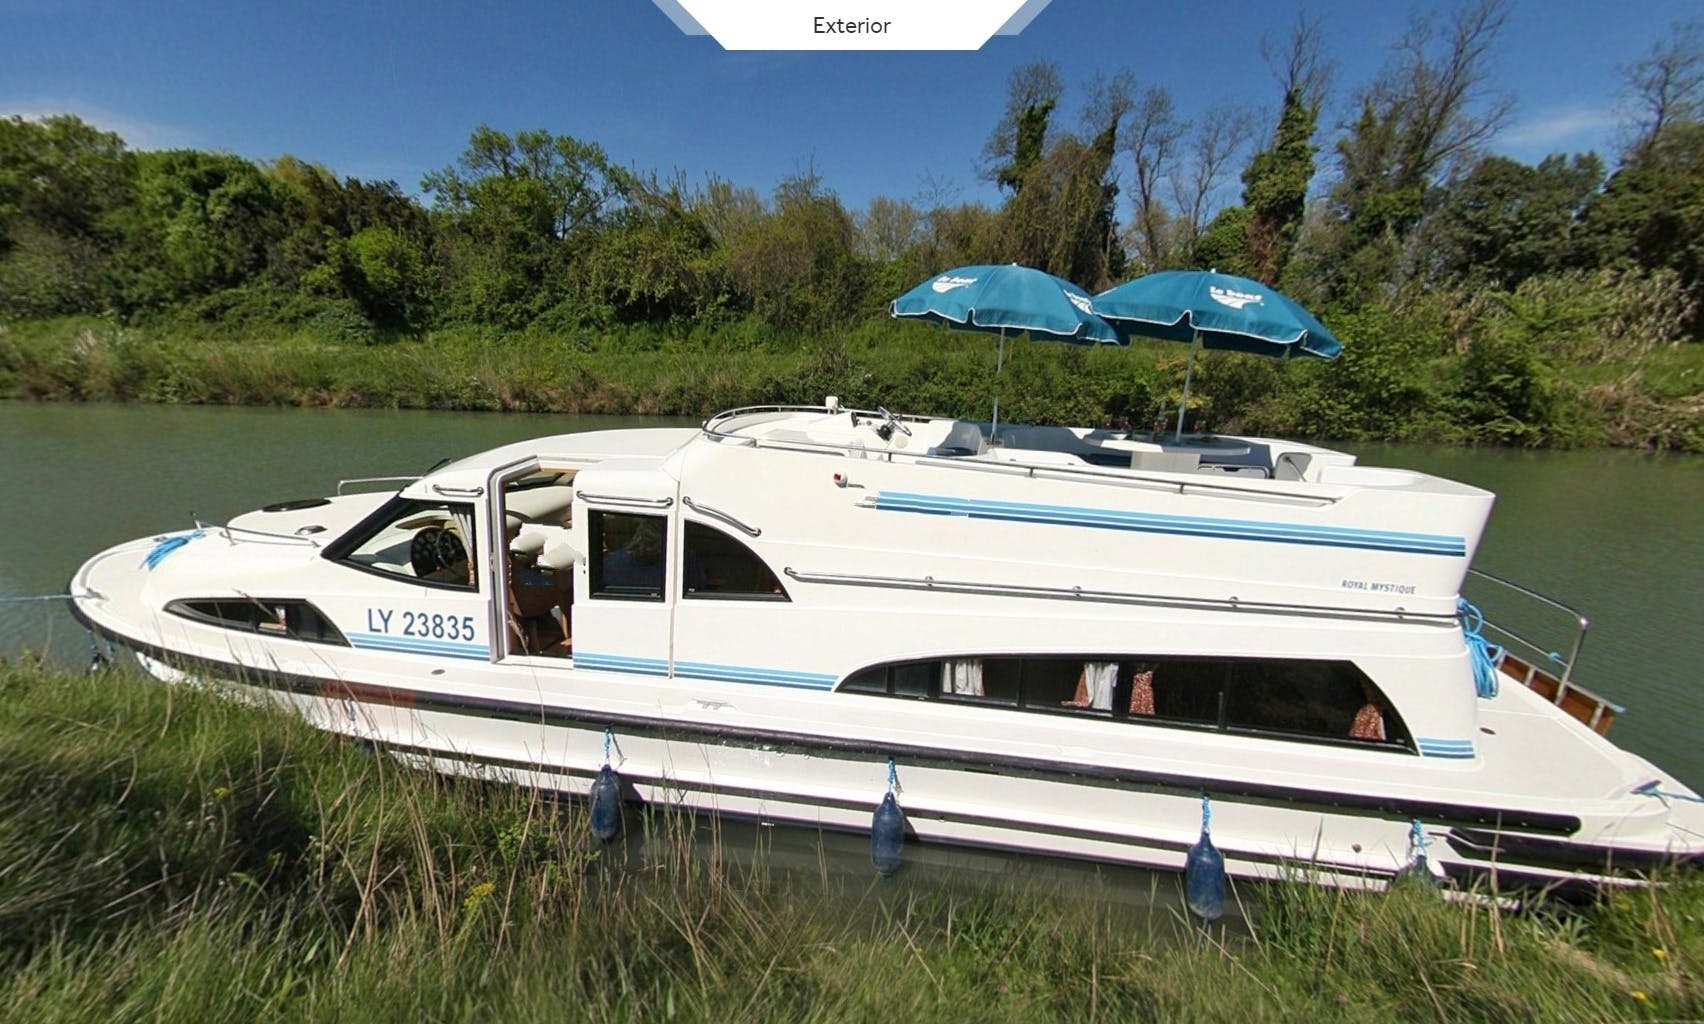 Travel Over Carrick On Shannon, Ireland With a 43' Canon Boat Up To 6 Persons